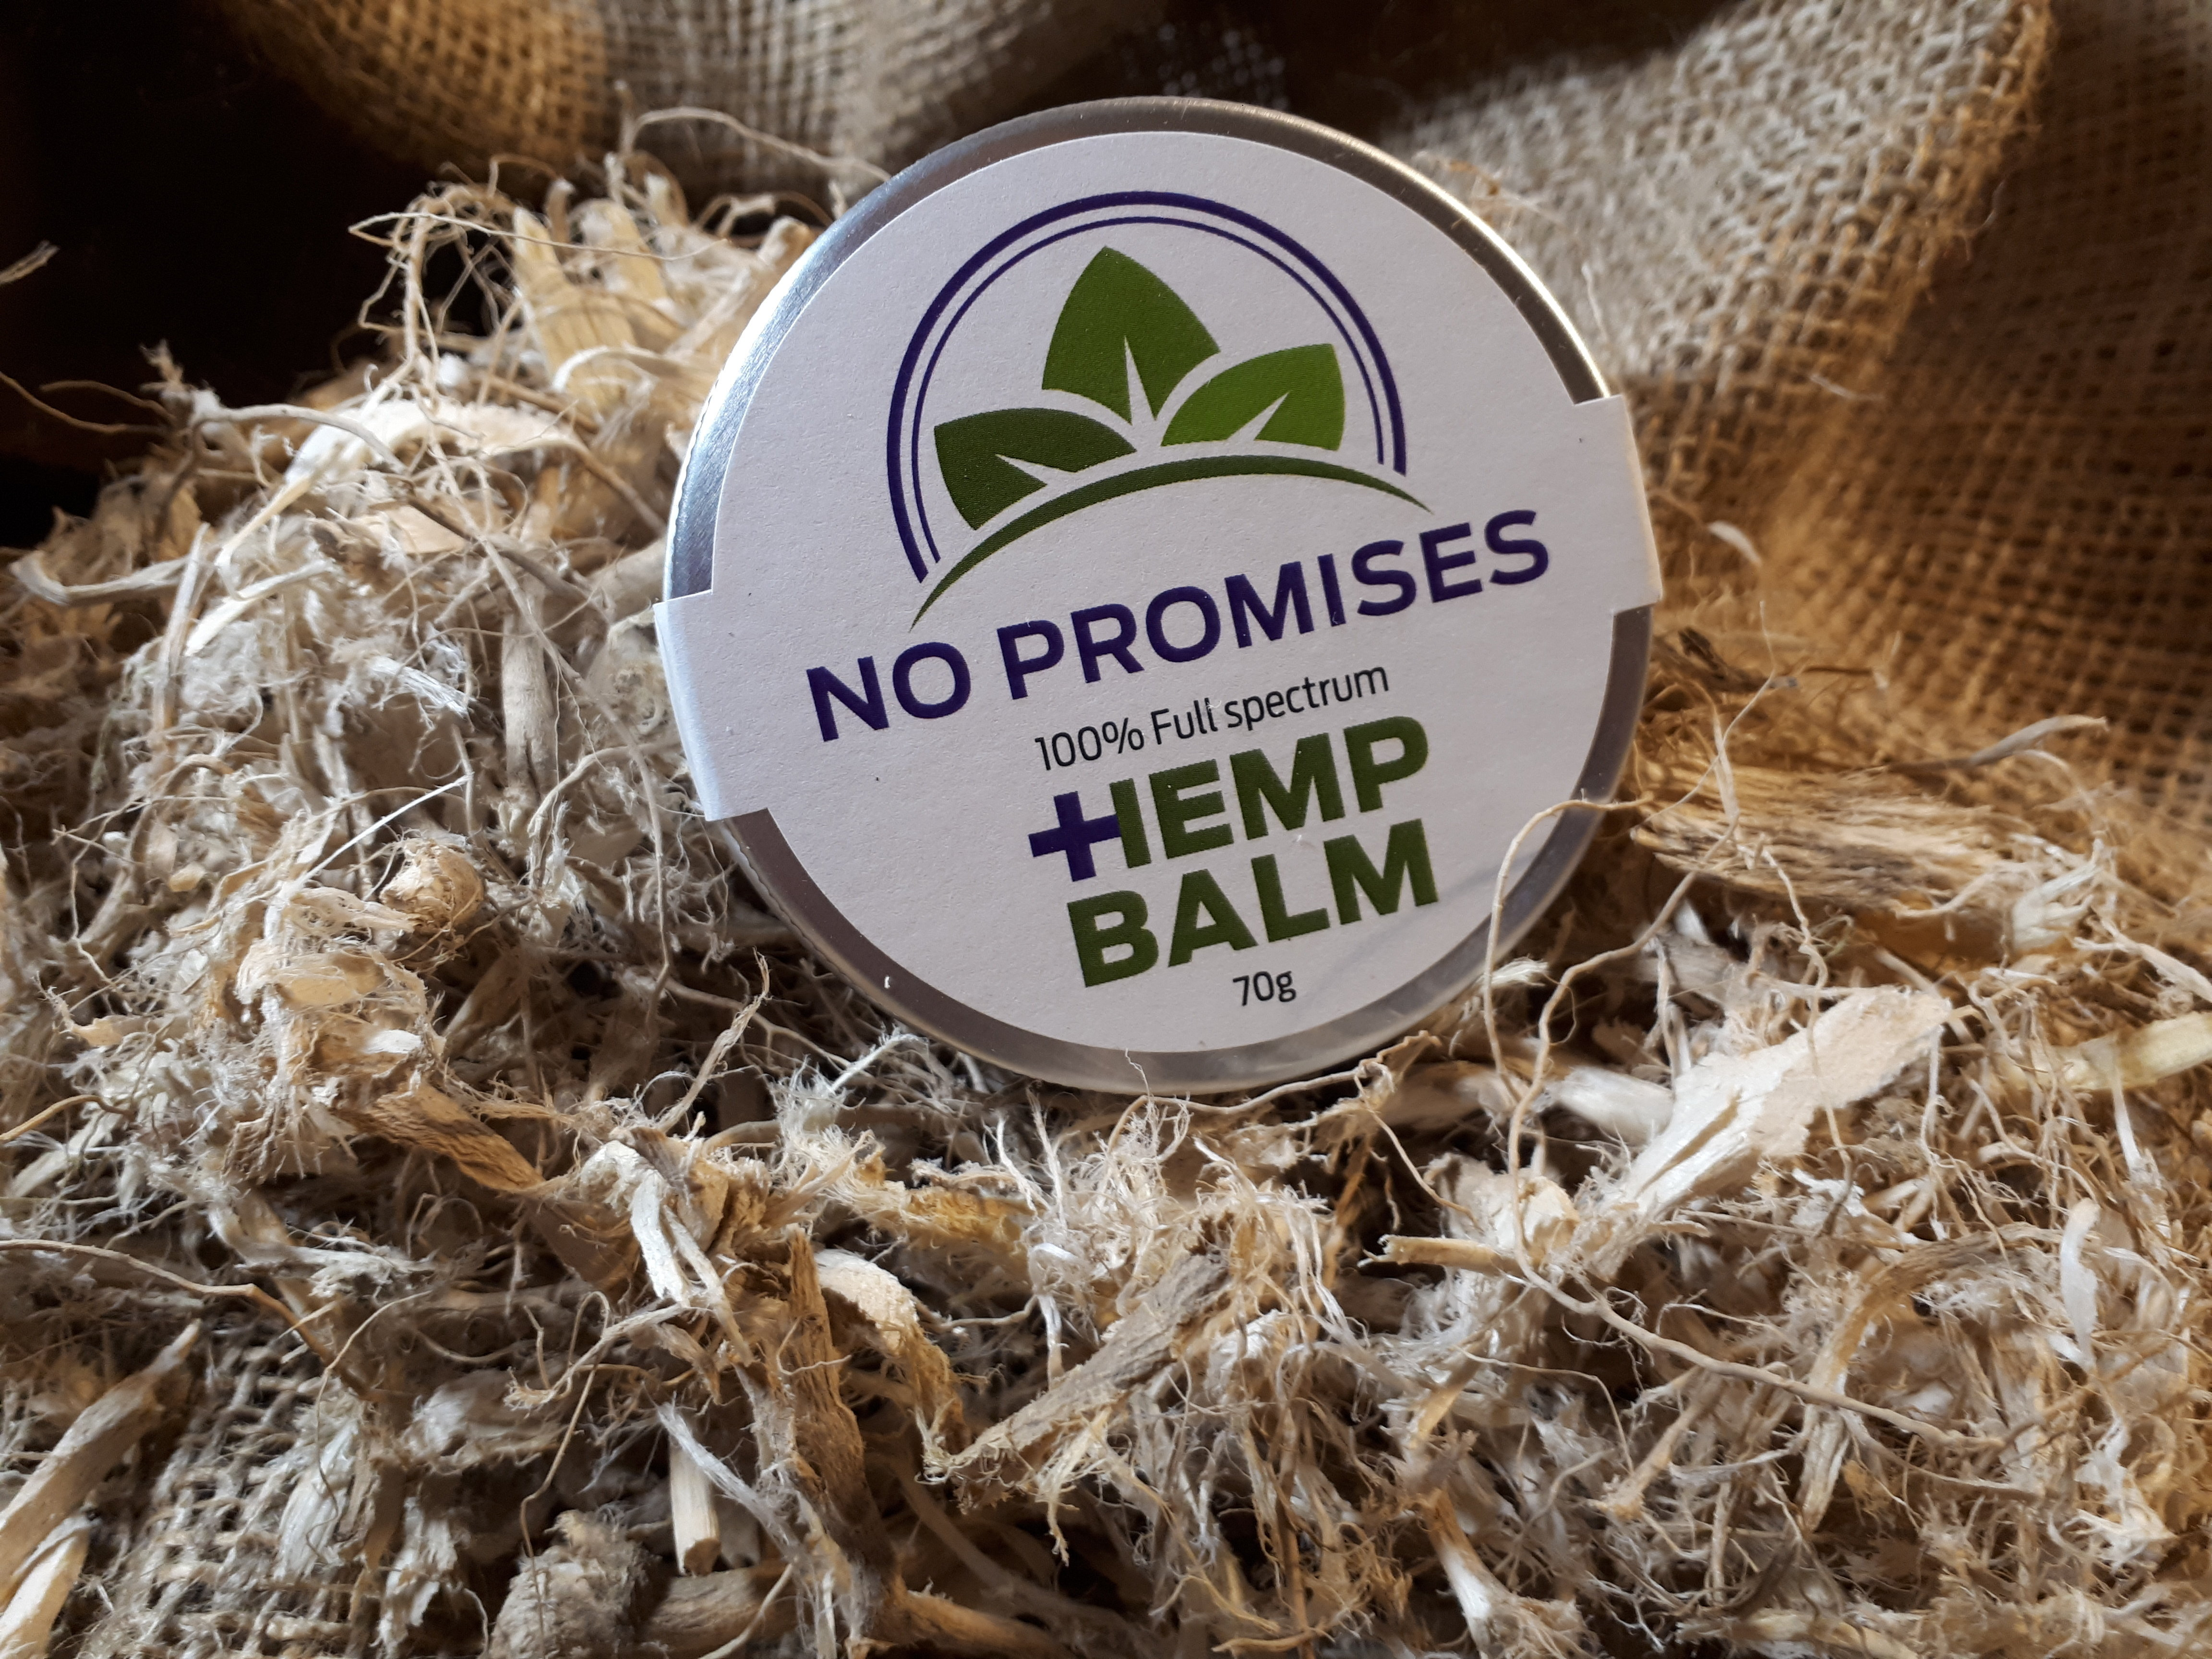 NO PROMISES Whole plant Hemp root Balm 70ml IHEMP MAG SPECIAL Normally $35.00 0000005